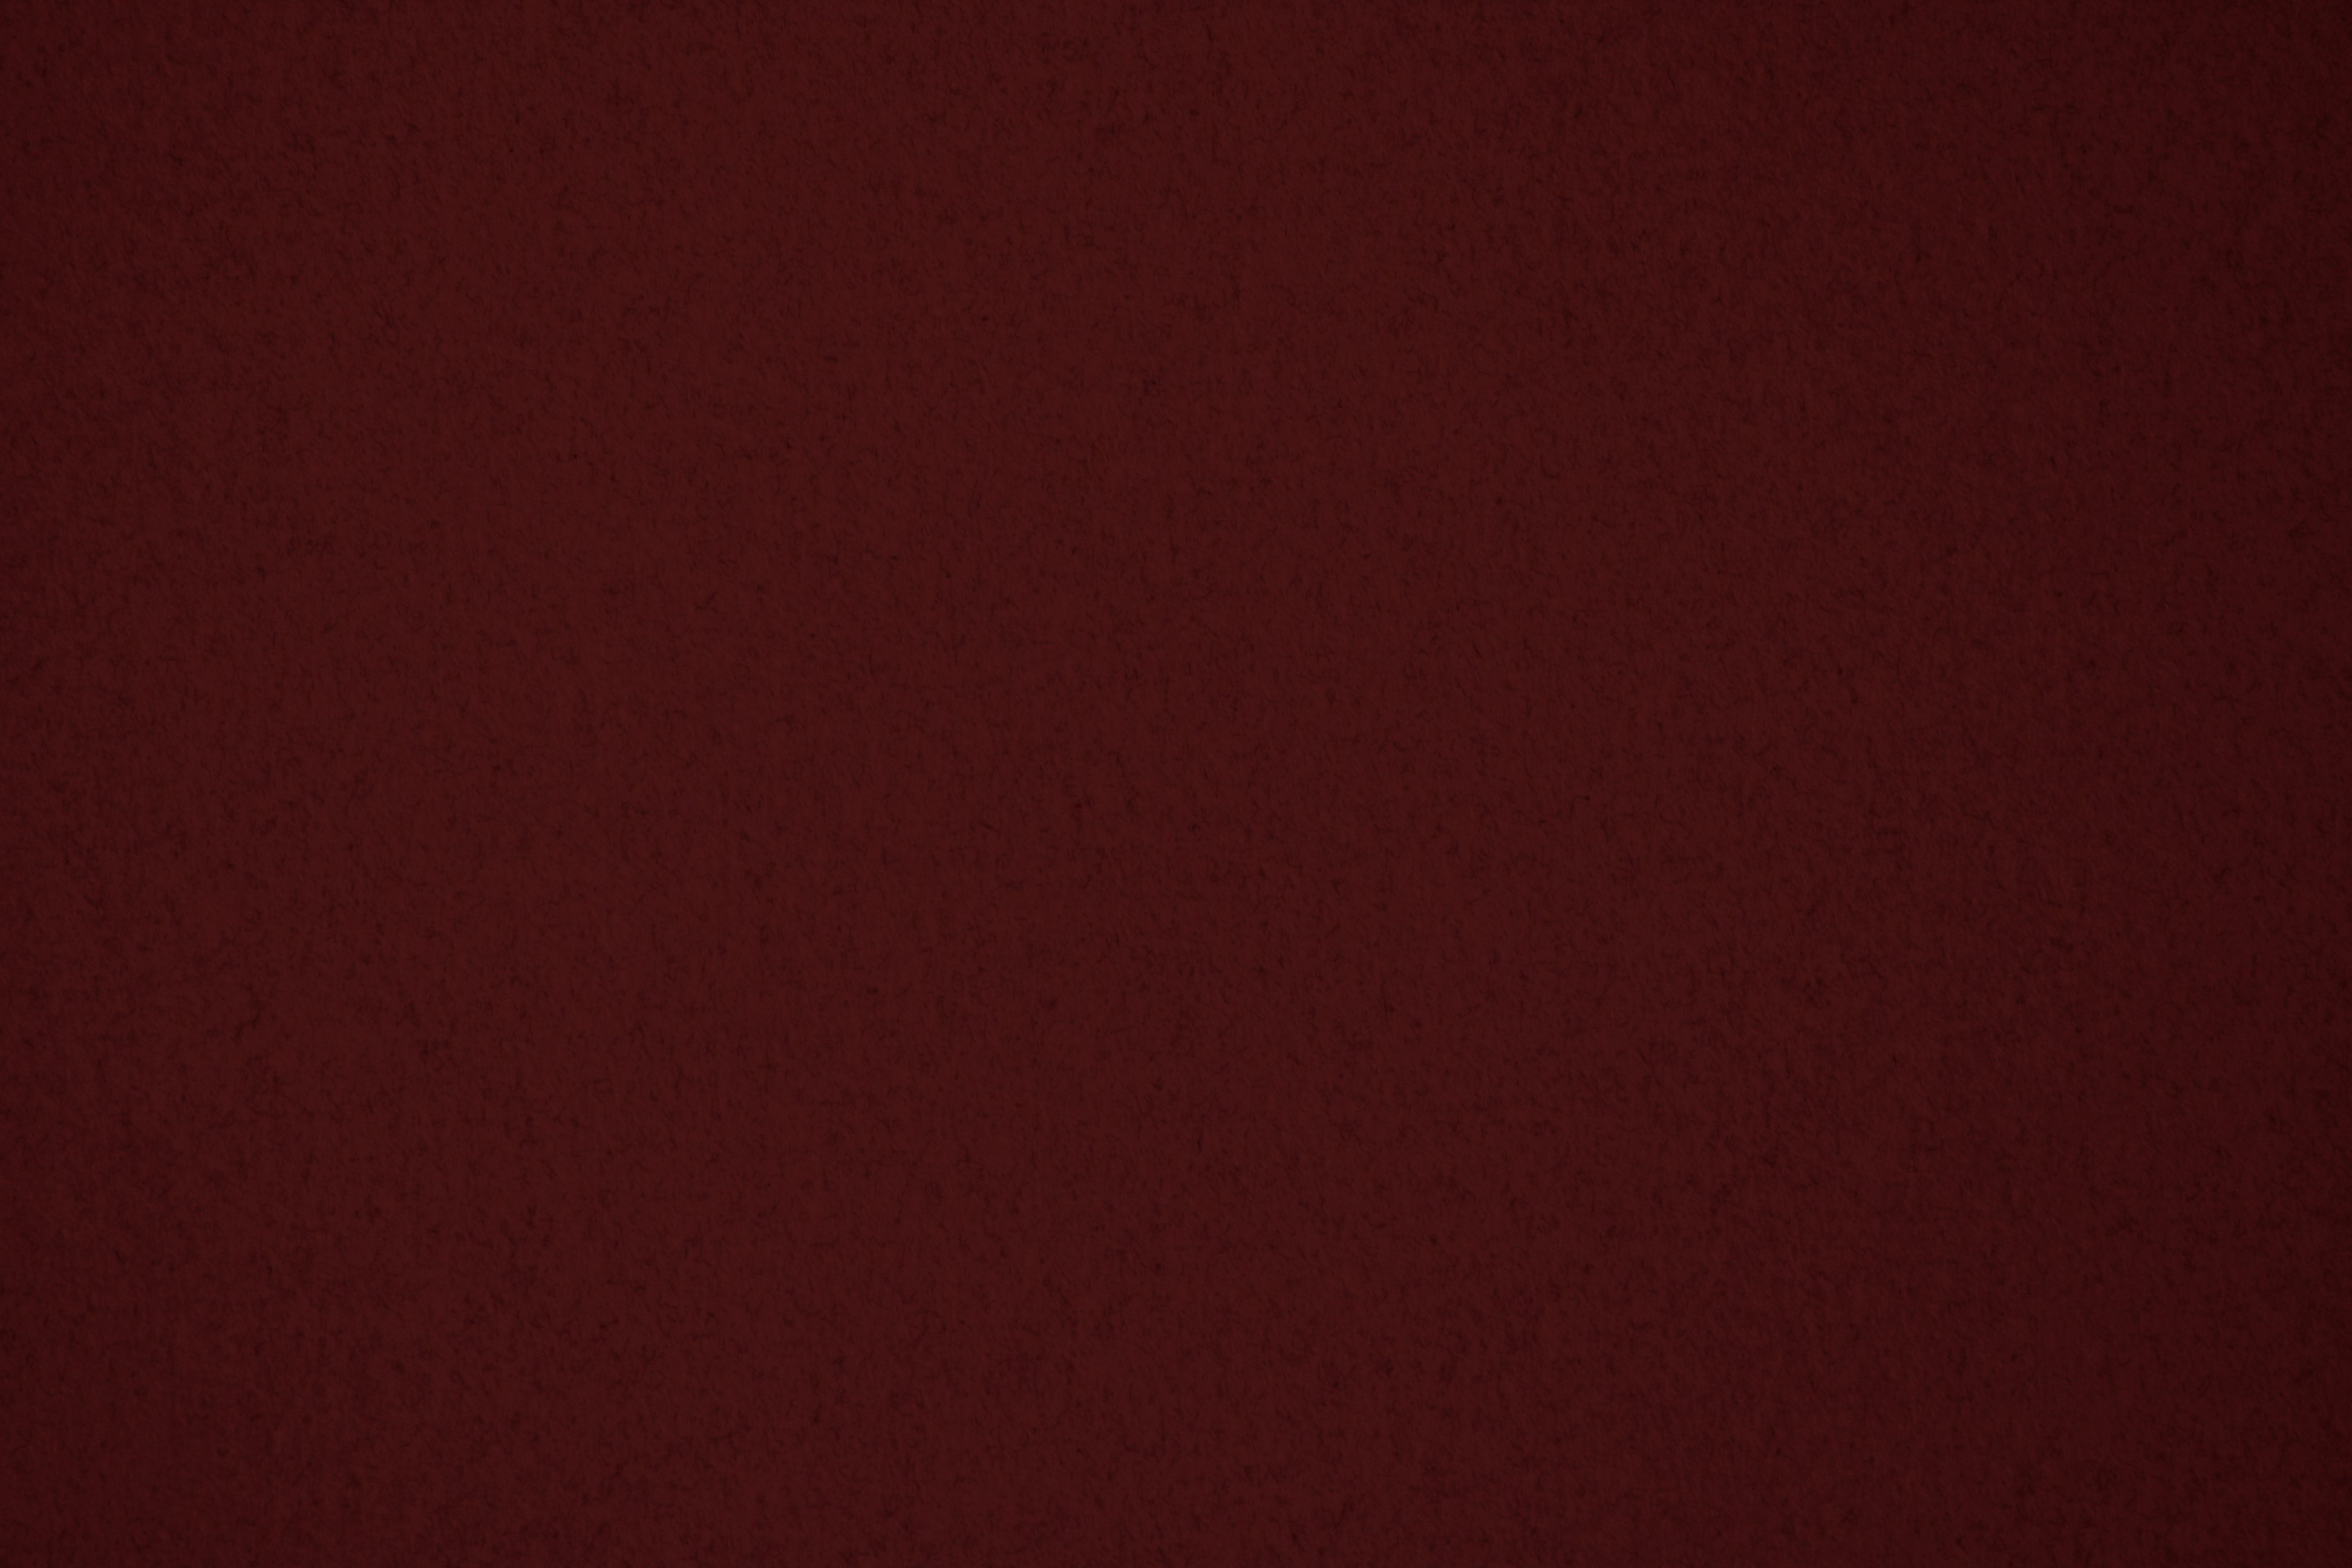 maroon speckled paper texture picture free photograph photos